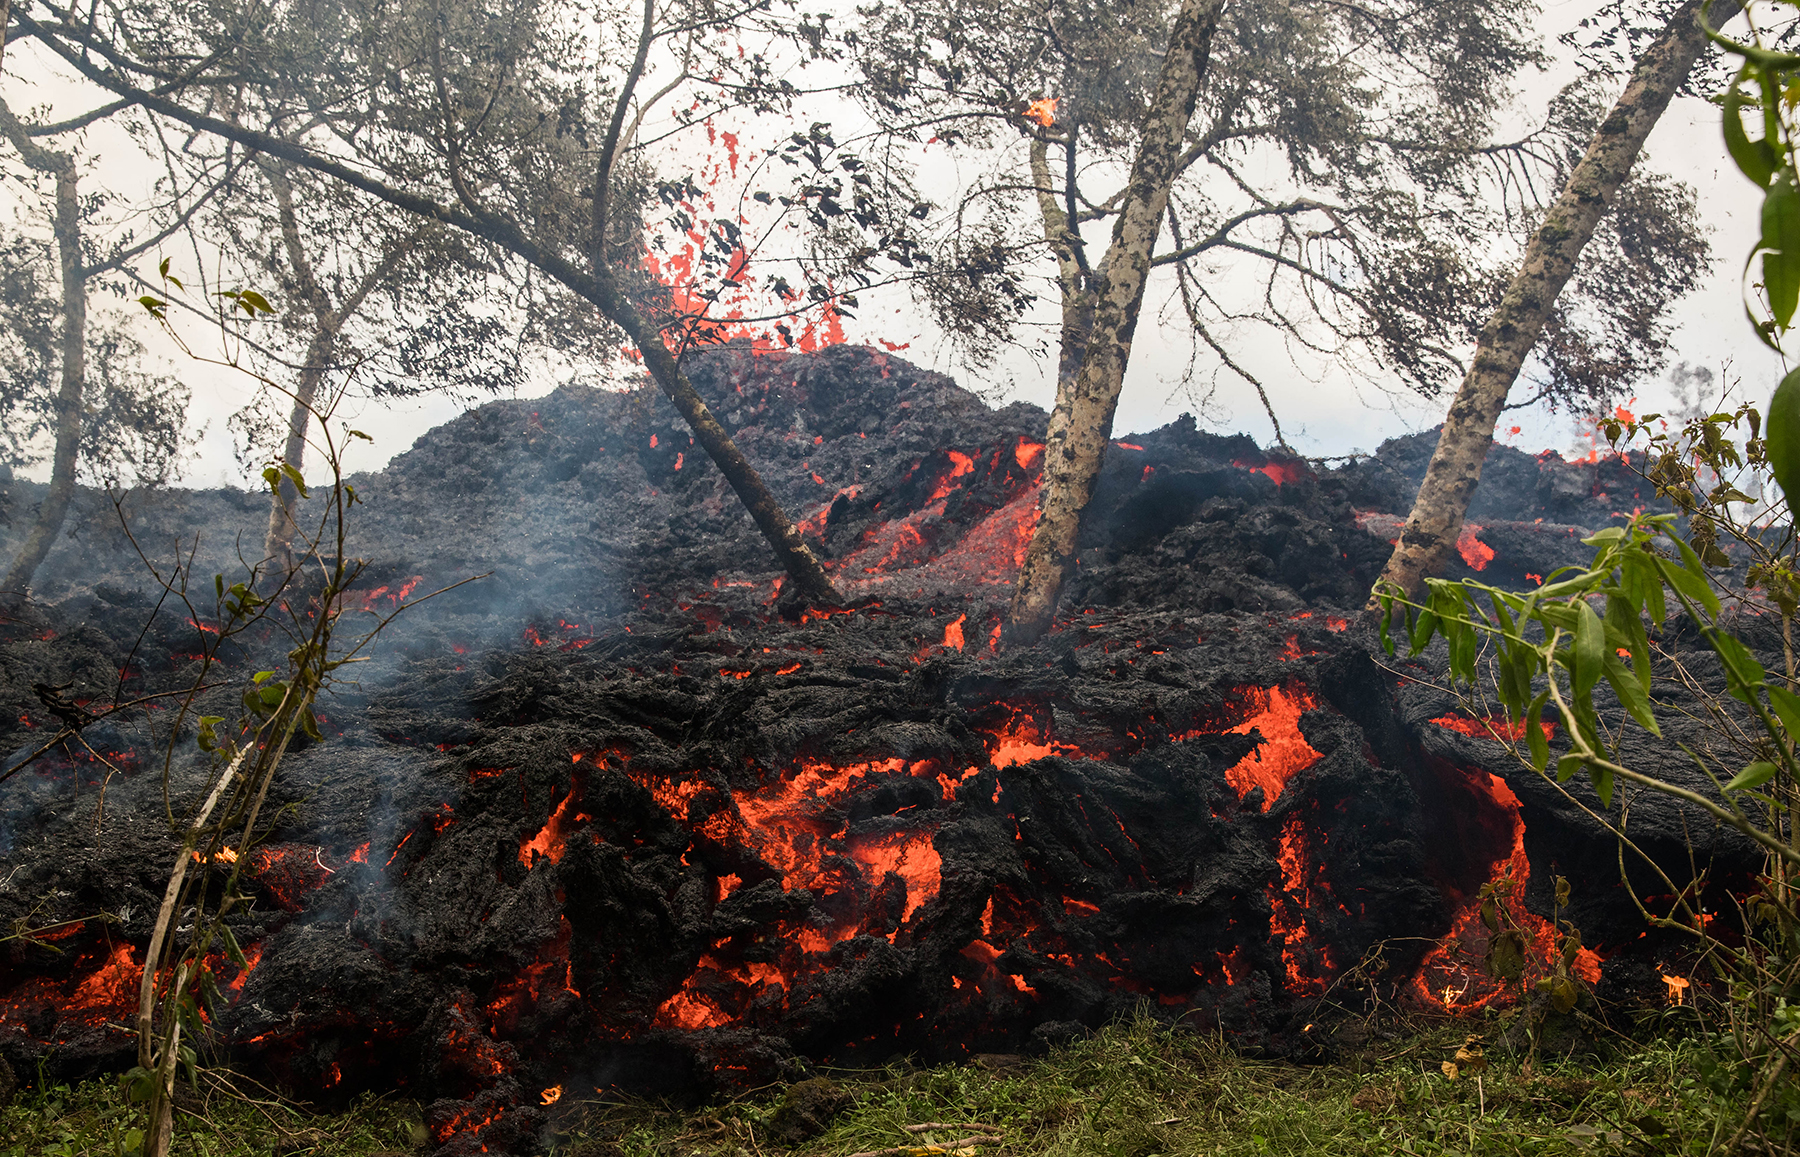 <p>Brush and trees begin to burn as the lava flows engulf an area on Saturday near Lower Puna on the Big Island. New fissures opened up on Saturday and Sunday a few miles from the communities, where at least 26 houses have been destroyed and 2,000 residents have received evacuation orders.</p>